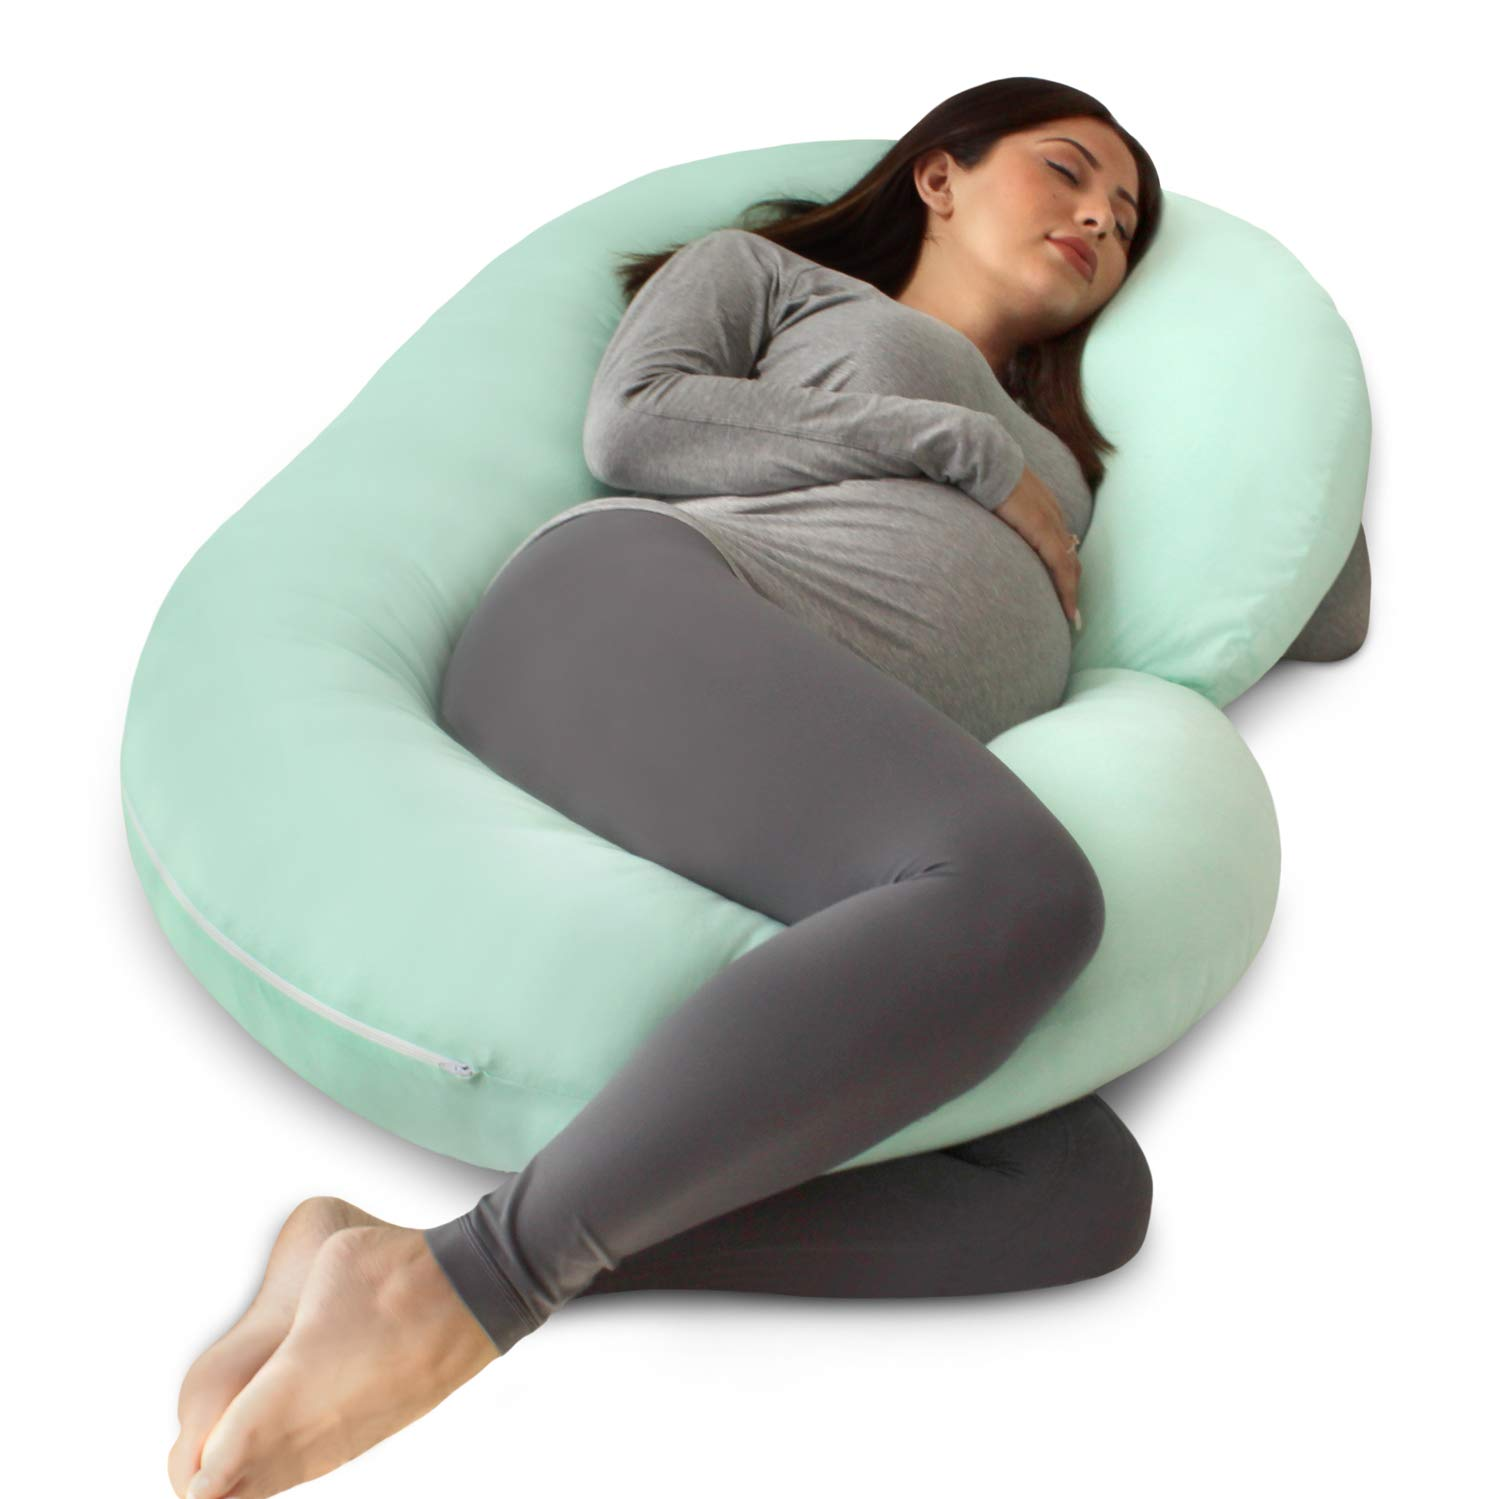 PharMeDoc best body pillow review by www.dailysleep.org